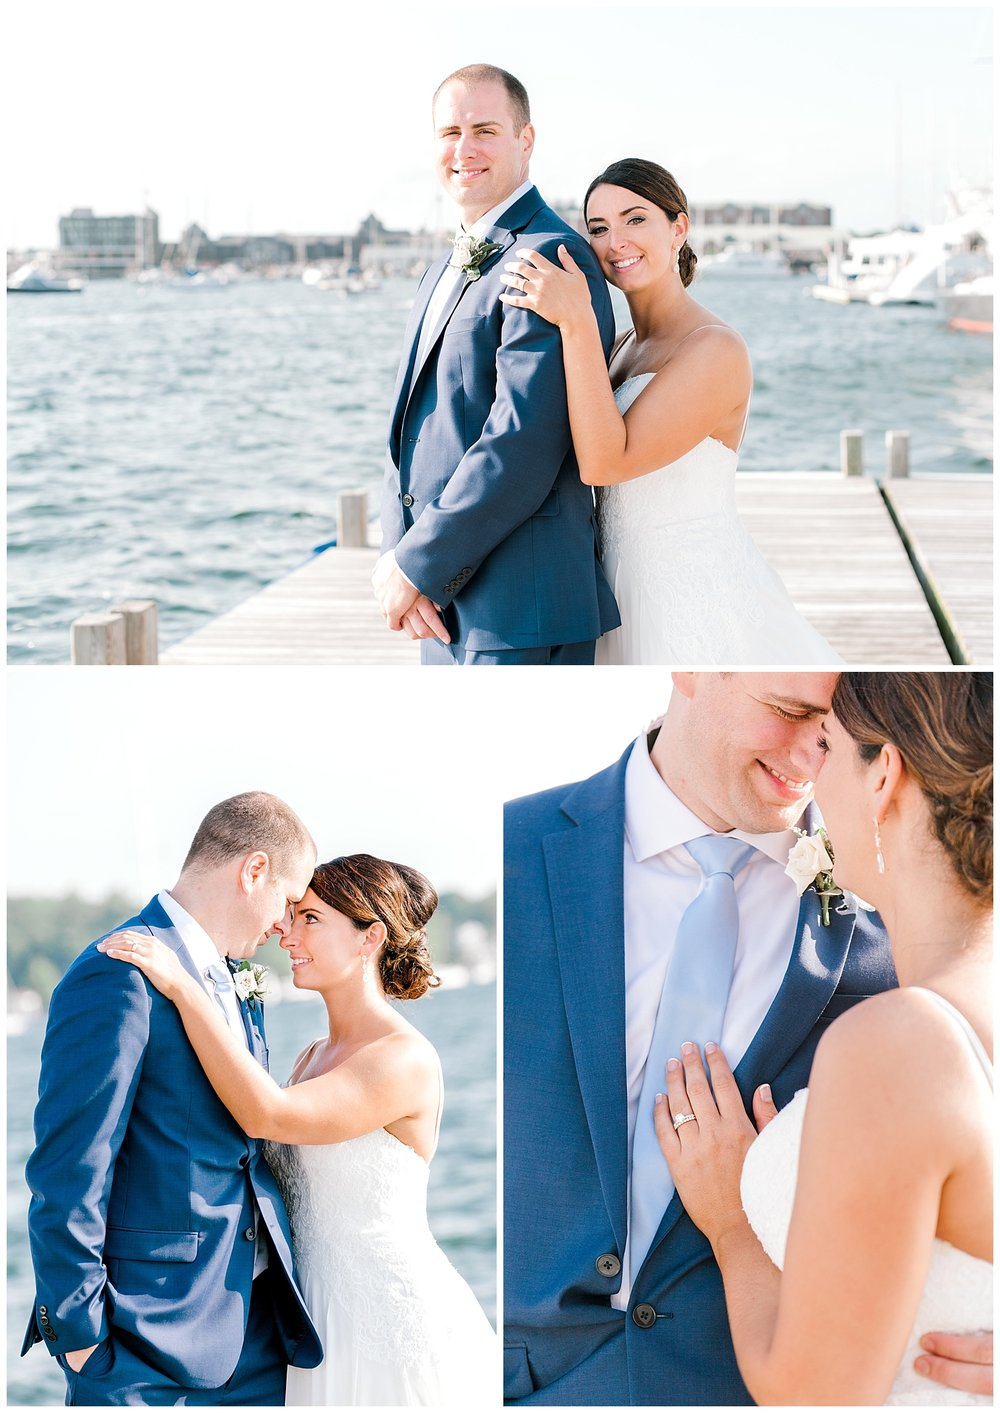 june8-The-Bohlin-newport-rhodeisland-wedding-photography-16.jpg